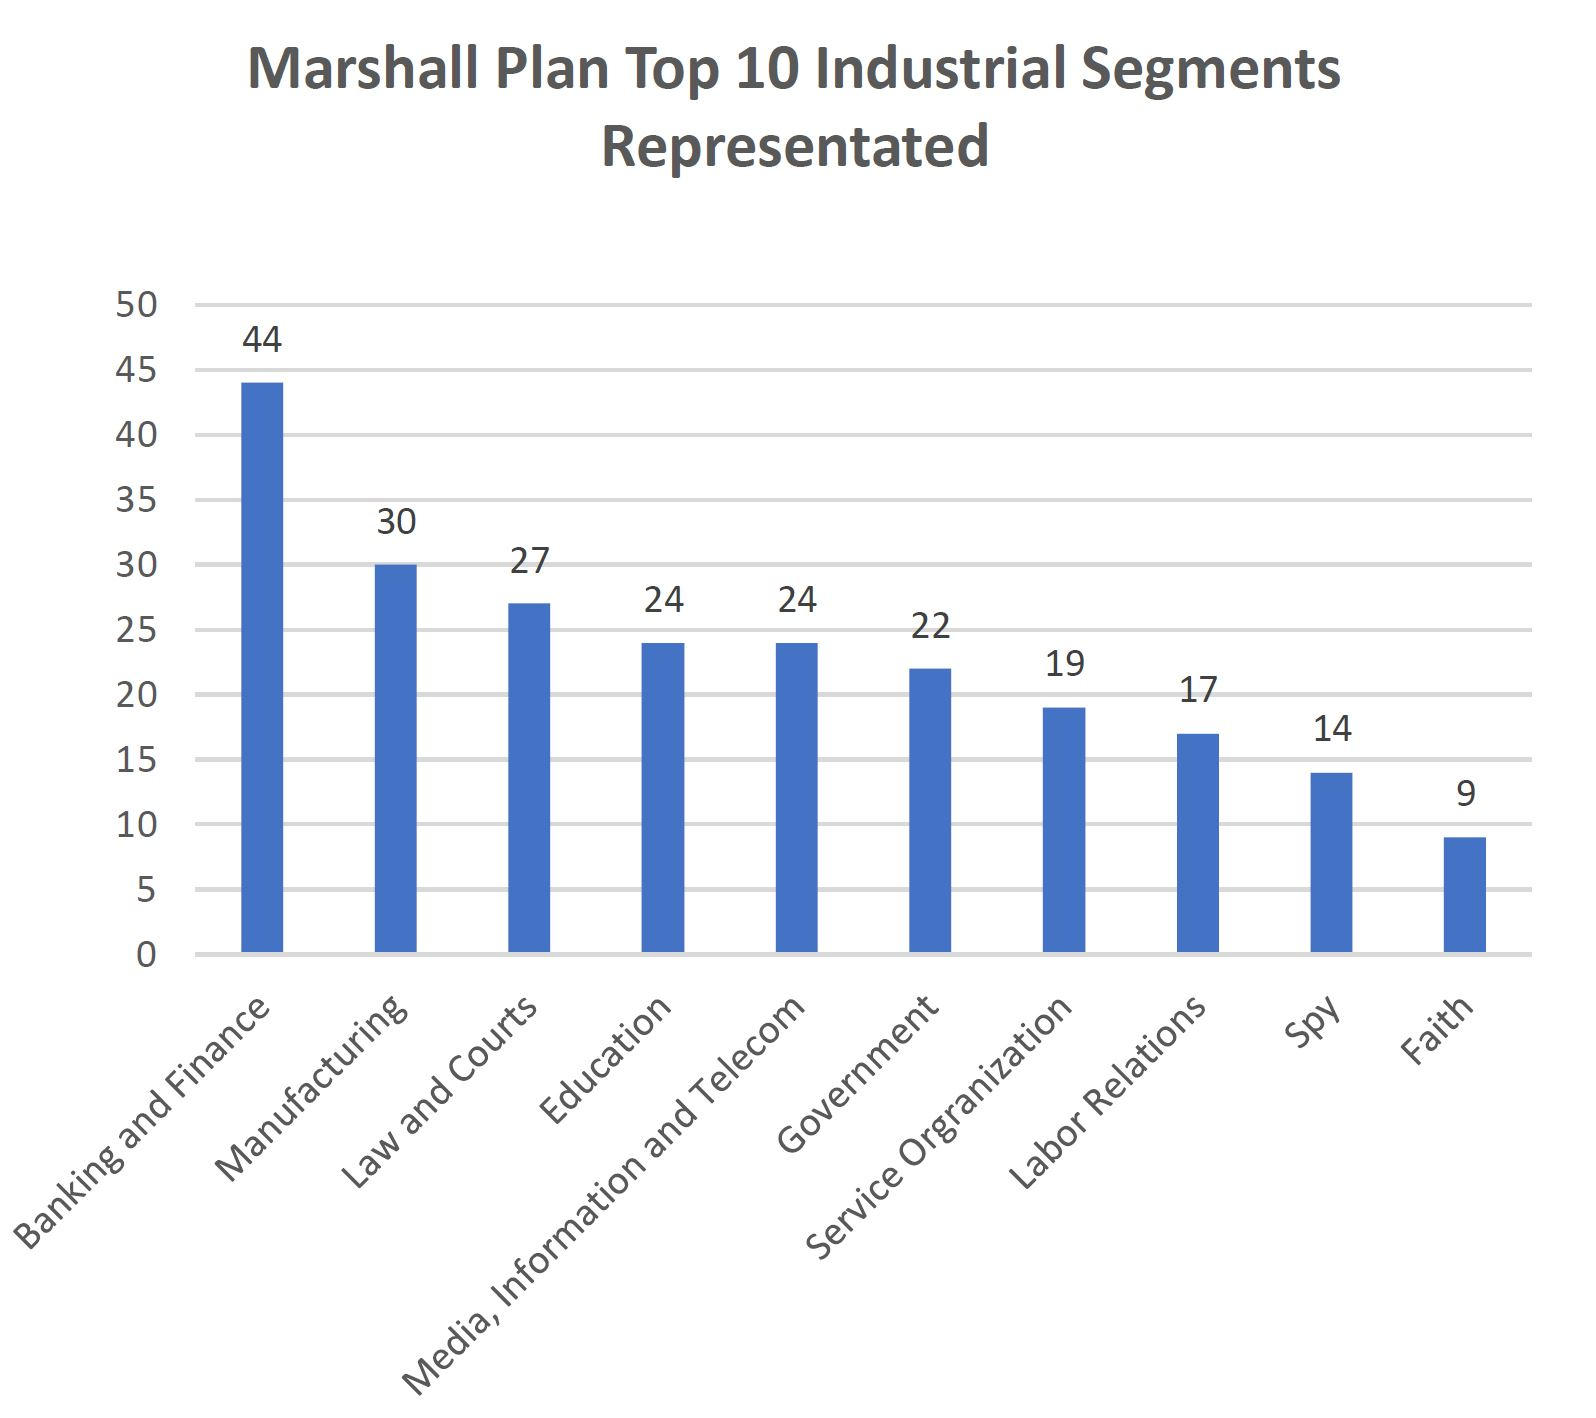 Marshall Plan Top 10 industry segments represented